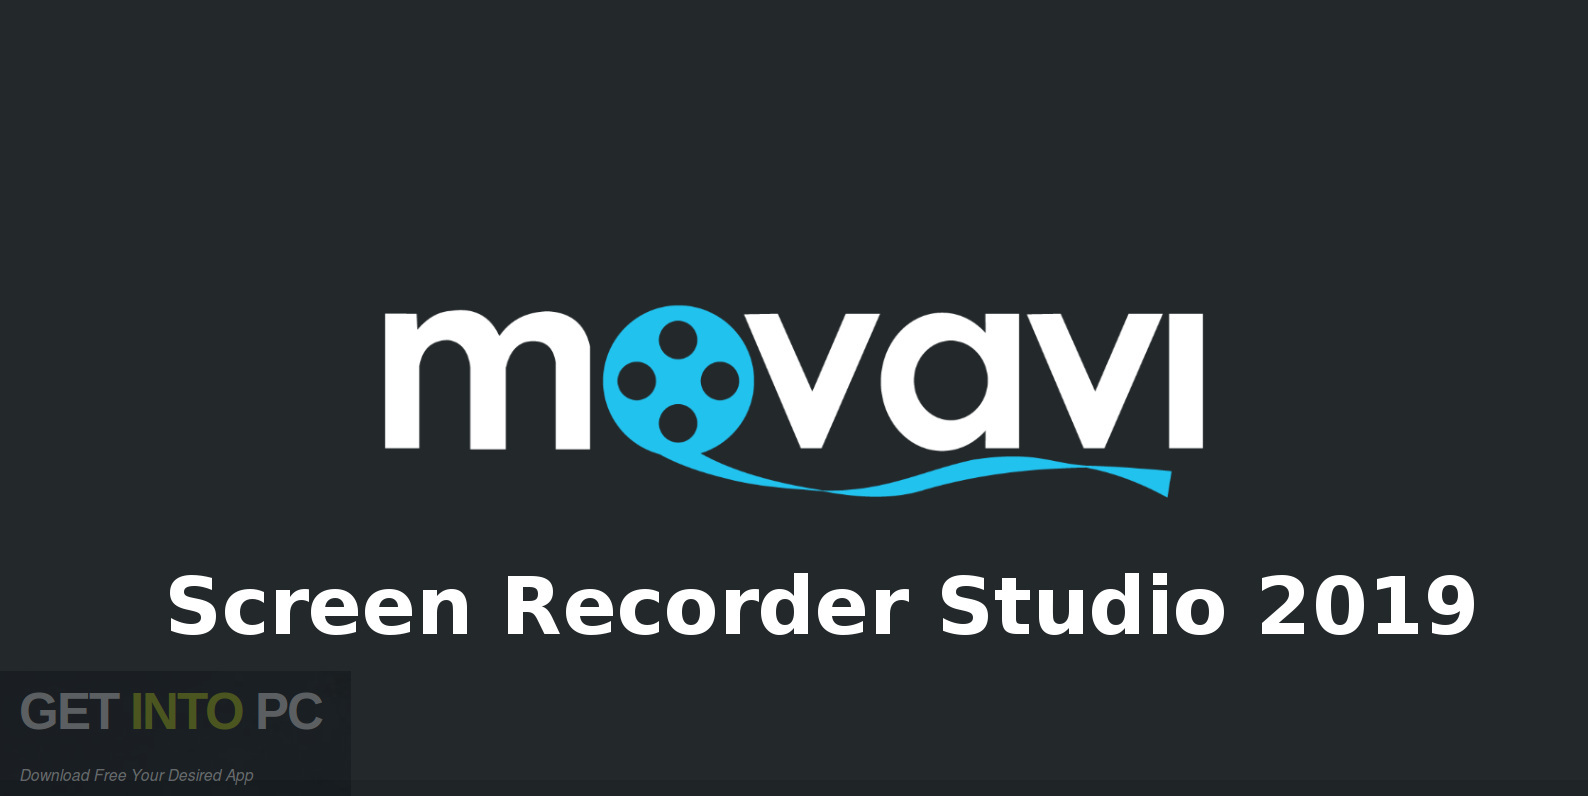 Movavi Screen Recorder Studio 2019 Free Download-GetintoPC.com